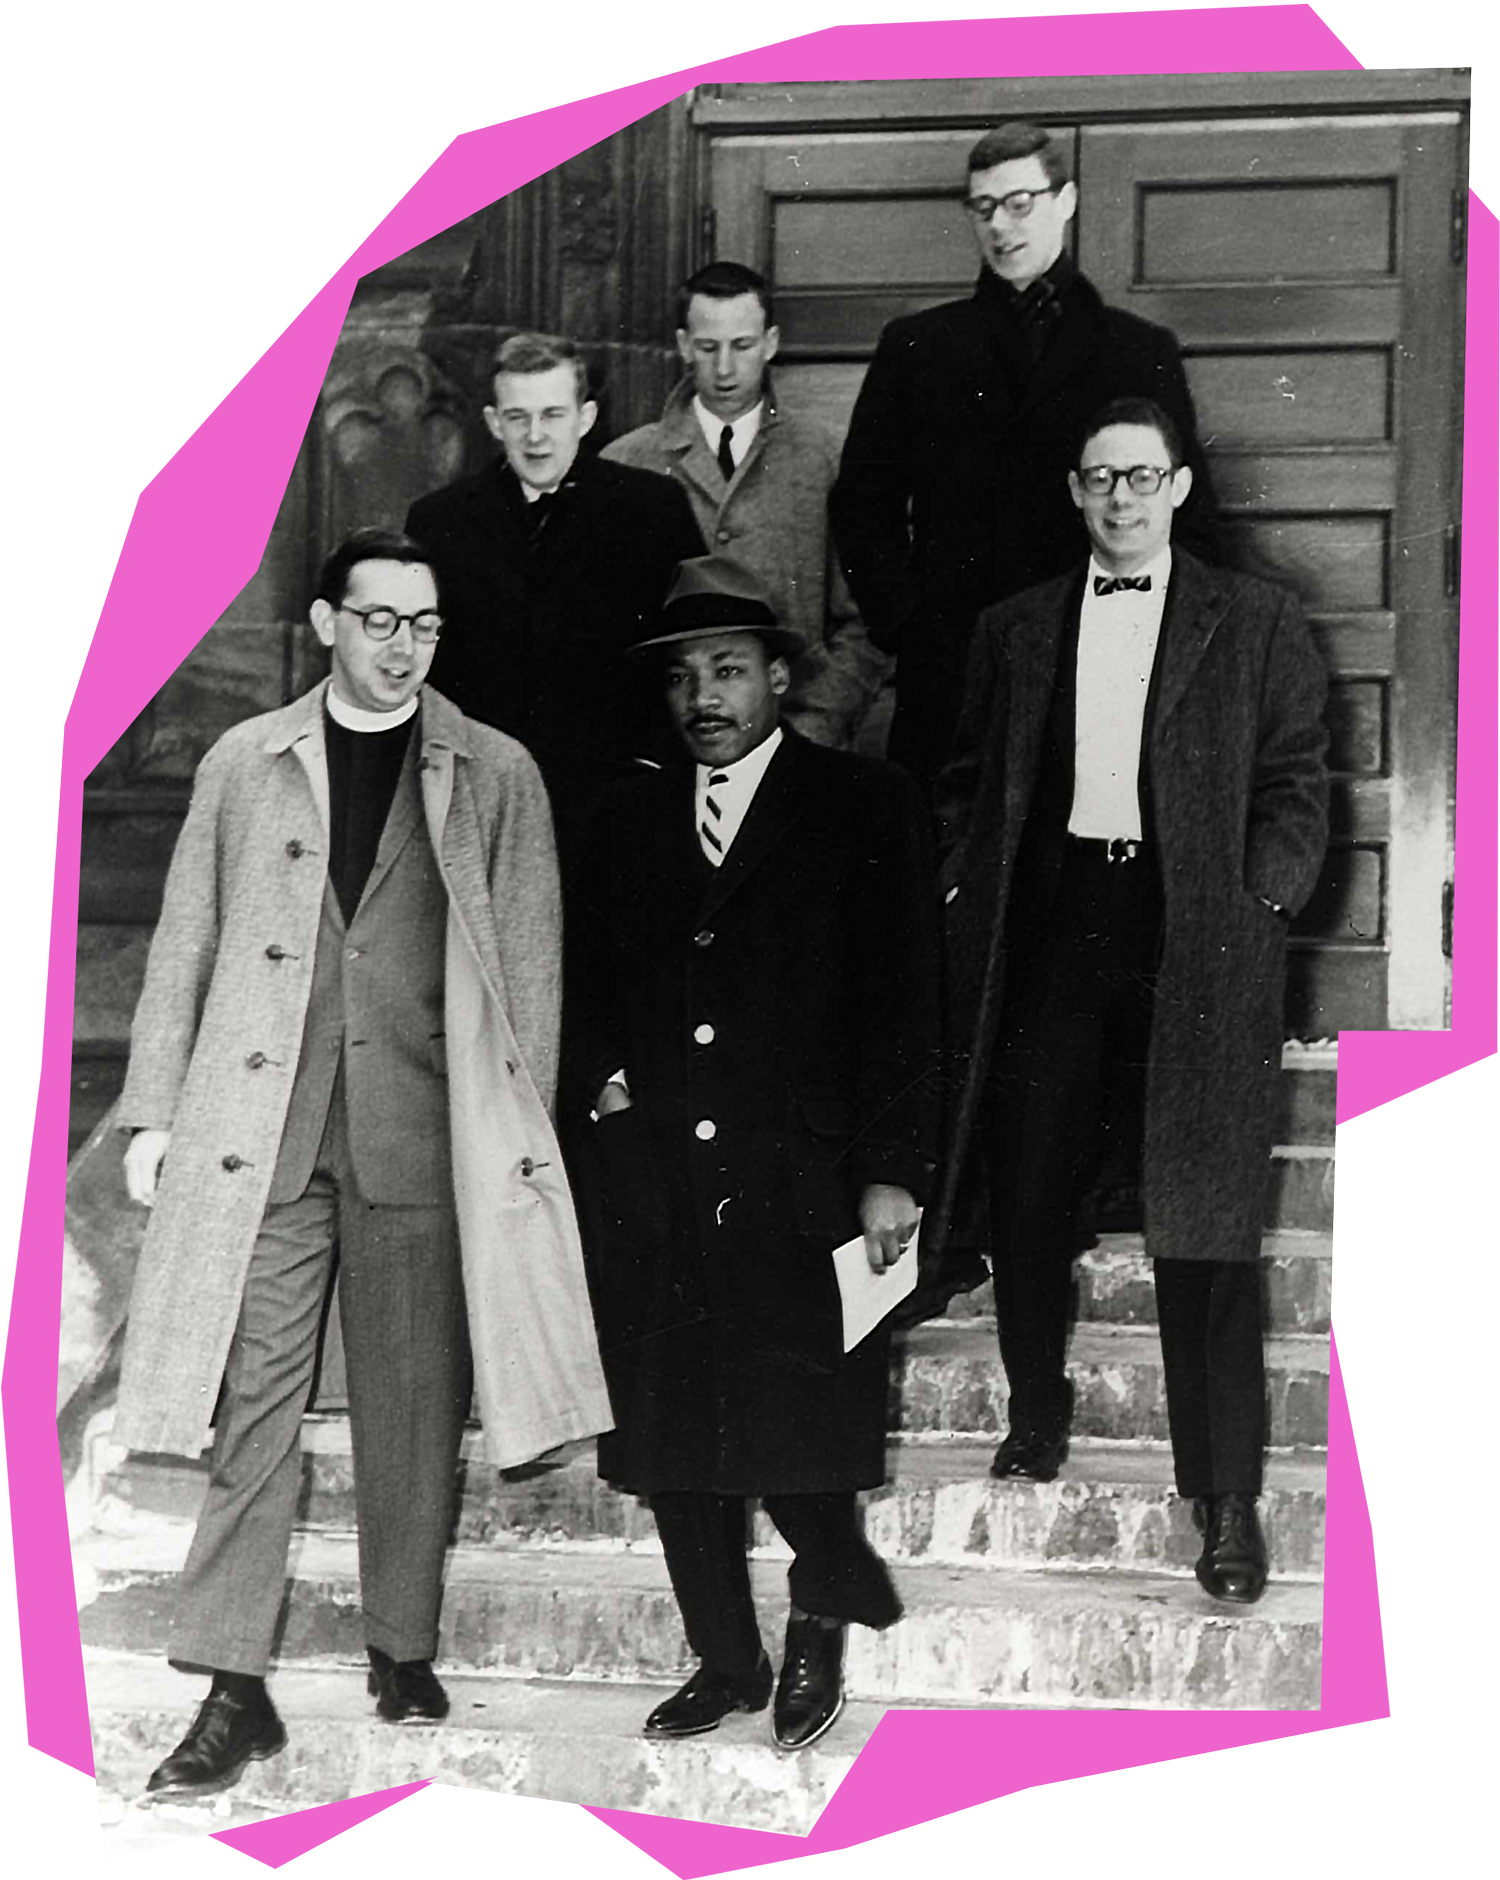 Martin Luther King, Jr. standing with Princeton administrators in front of Chancellor Green in 1960.